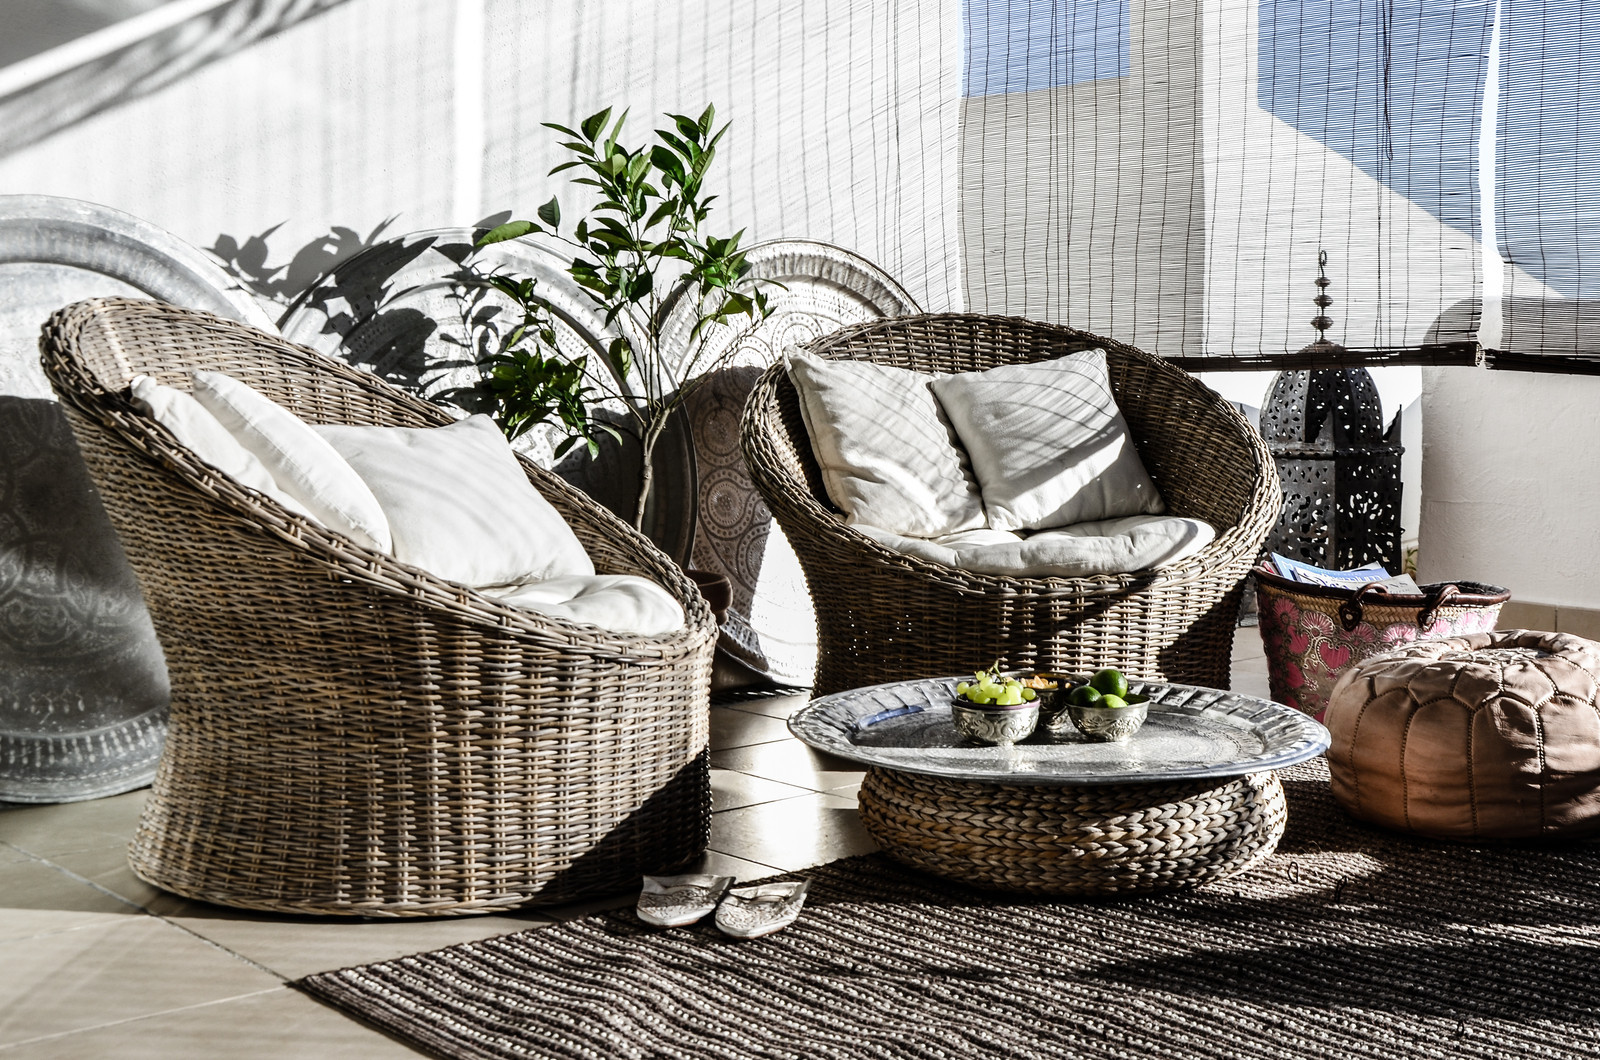 Zoco Home - Ethnic Scandinavian Decor - Outdoor Accessories | designlibrary.com.au